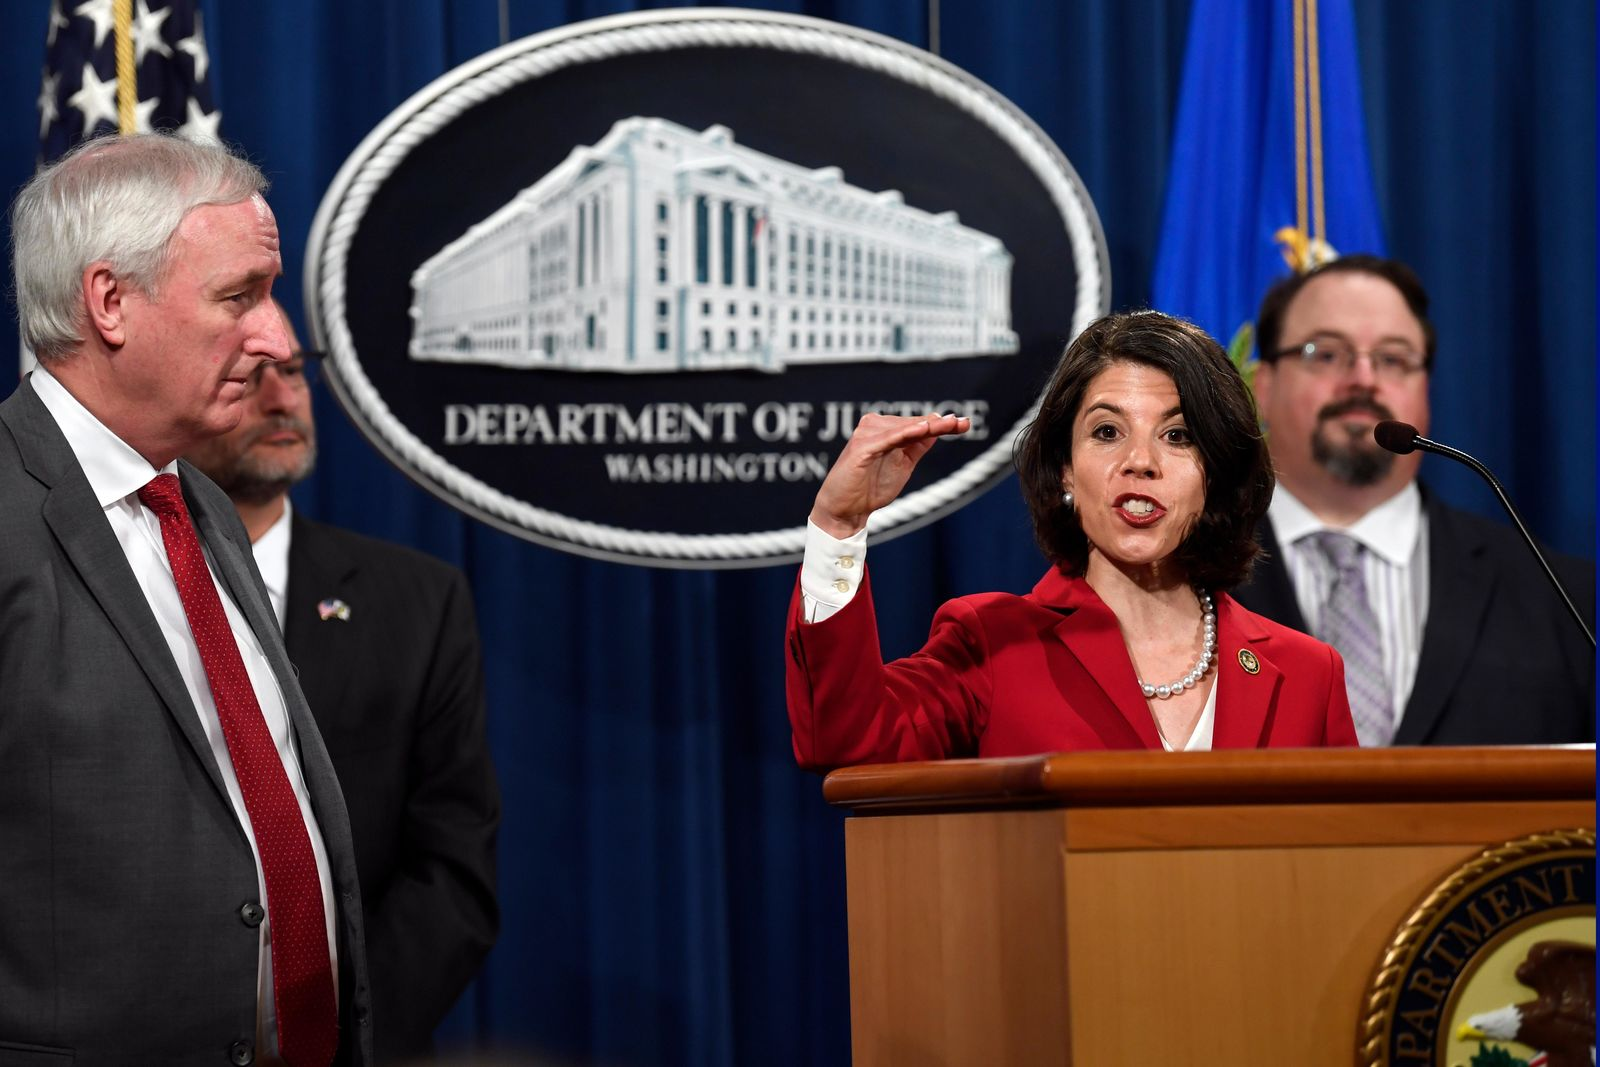 Associate Deputy Attorney General Toni Bacon, second from right, speaks during a news conference at the Justice Department in Washington, Friday, July 19, 2019, on developments in the implementation of the First Step Act. (AP Photo/Susan Walsh)